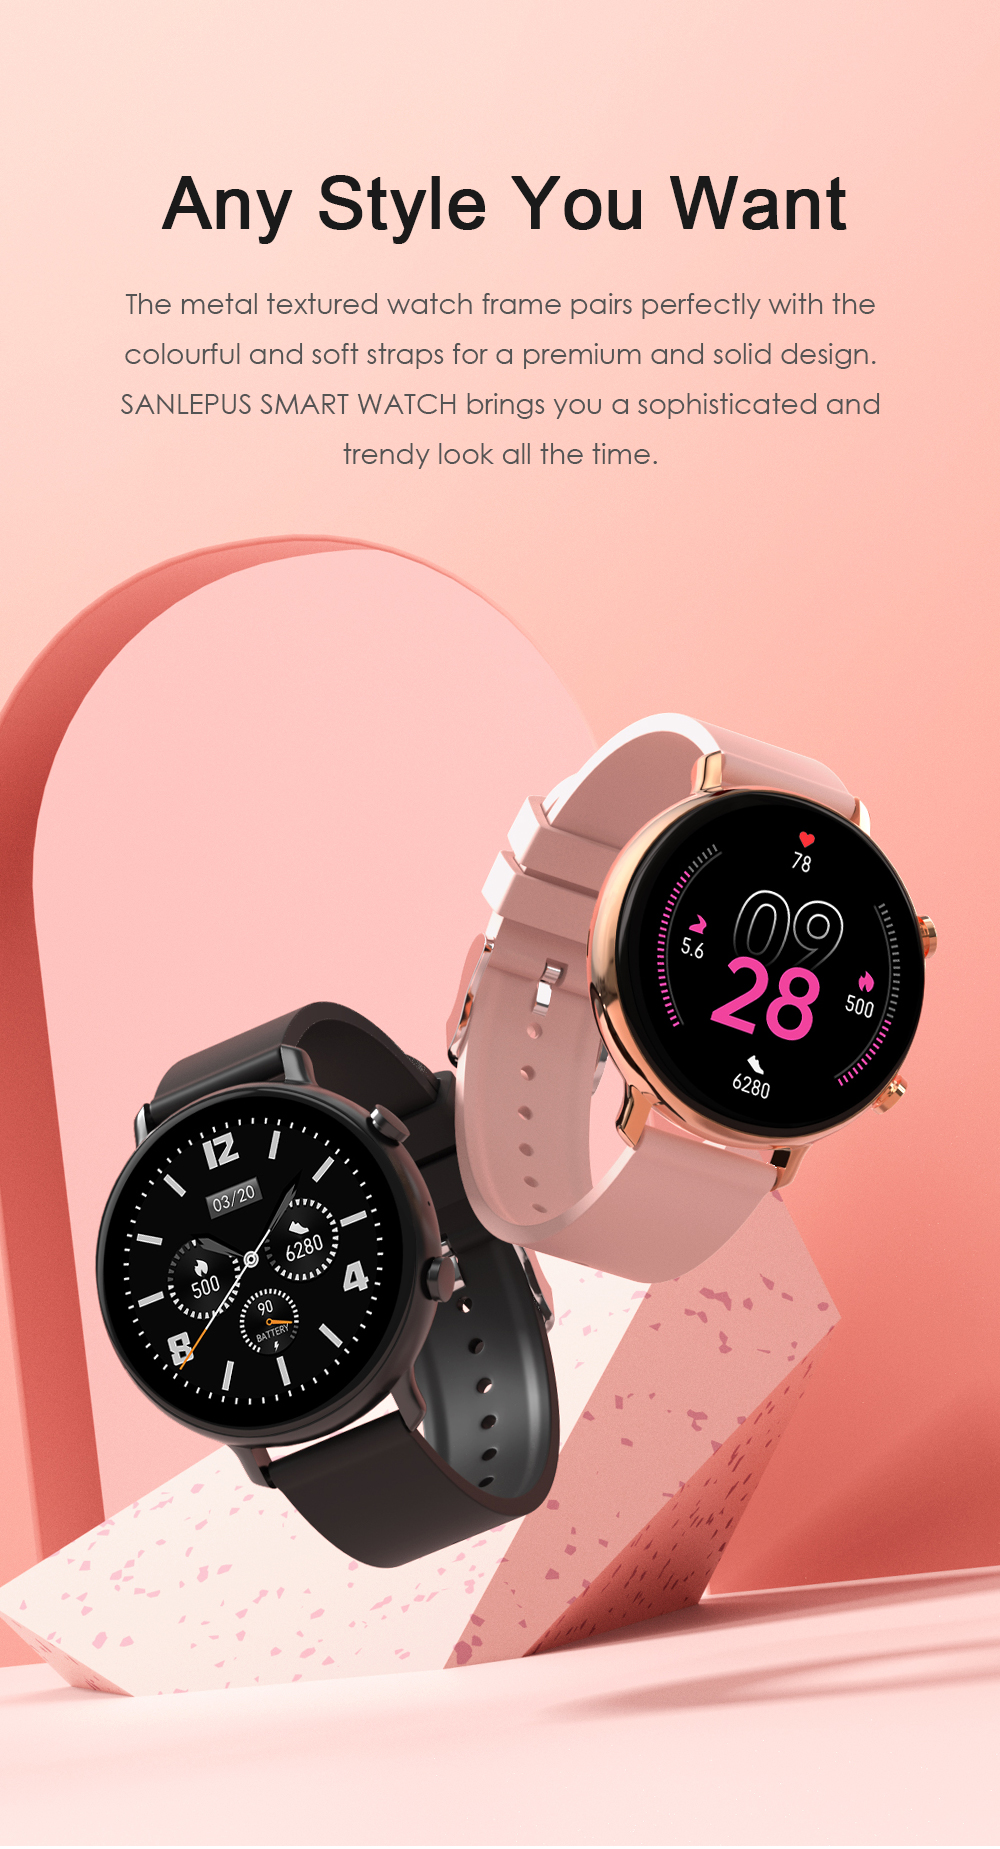 He02967a6086c44118c93fac48cf06f36M SANLEPUS ECG PPG Smart Watch With Dial Calls 2021 New Men Women Smartwatch Blood Pressure Monitor For Android Samsung Apple